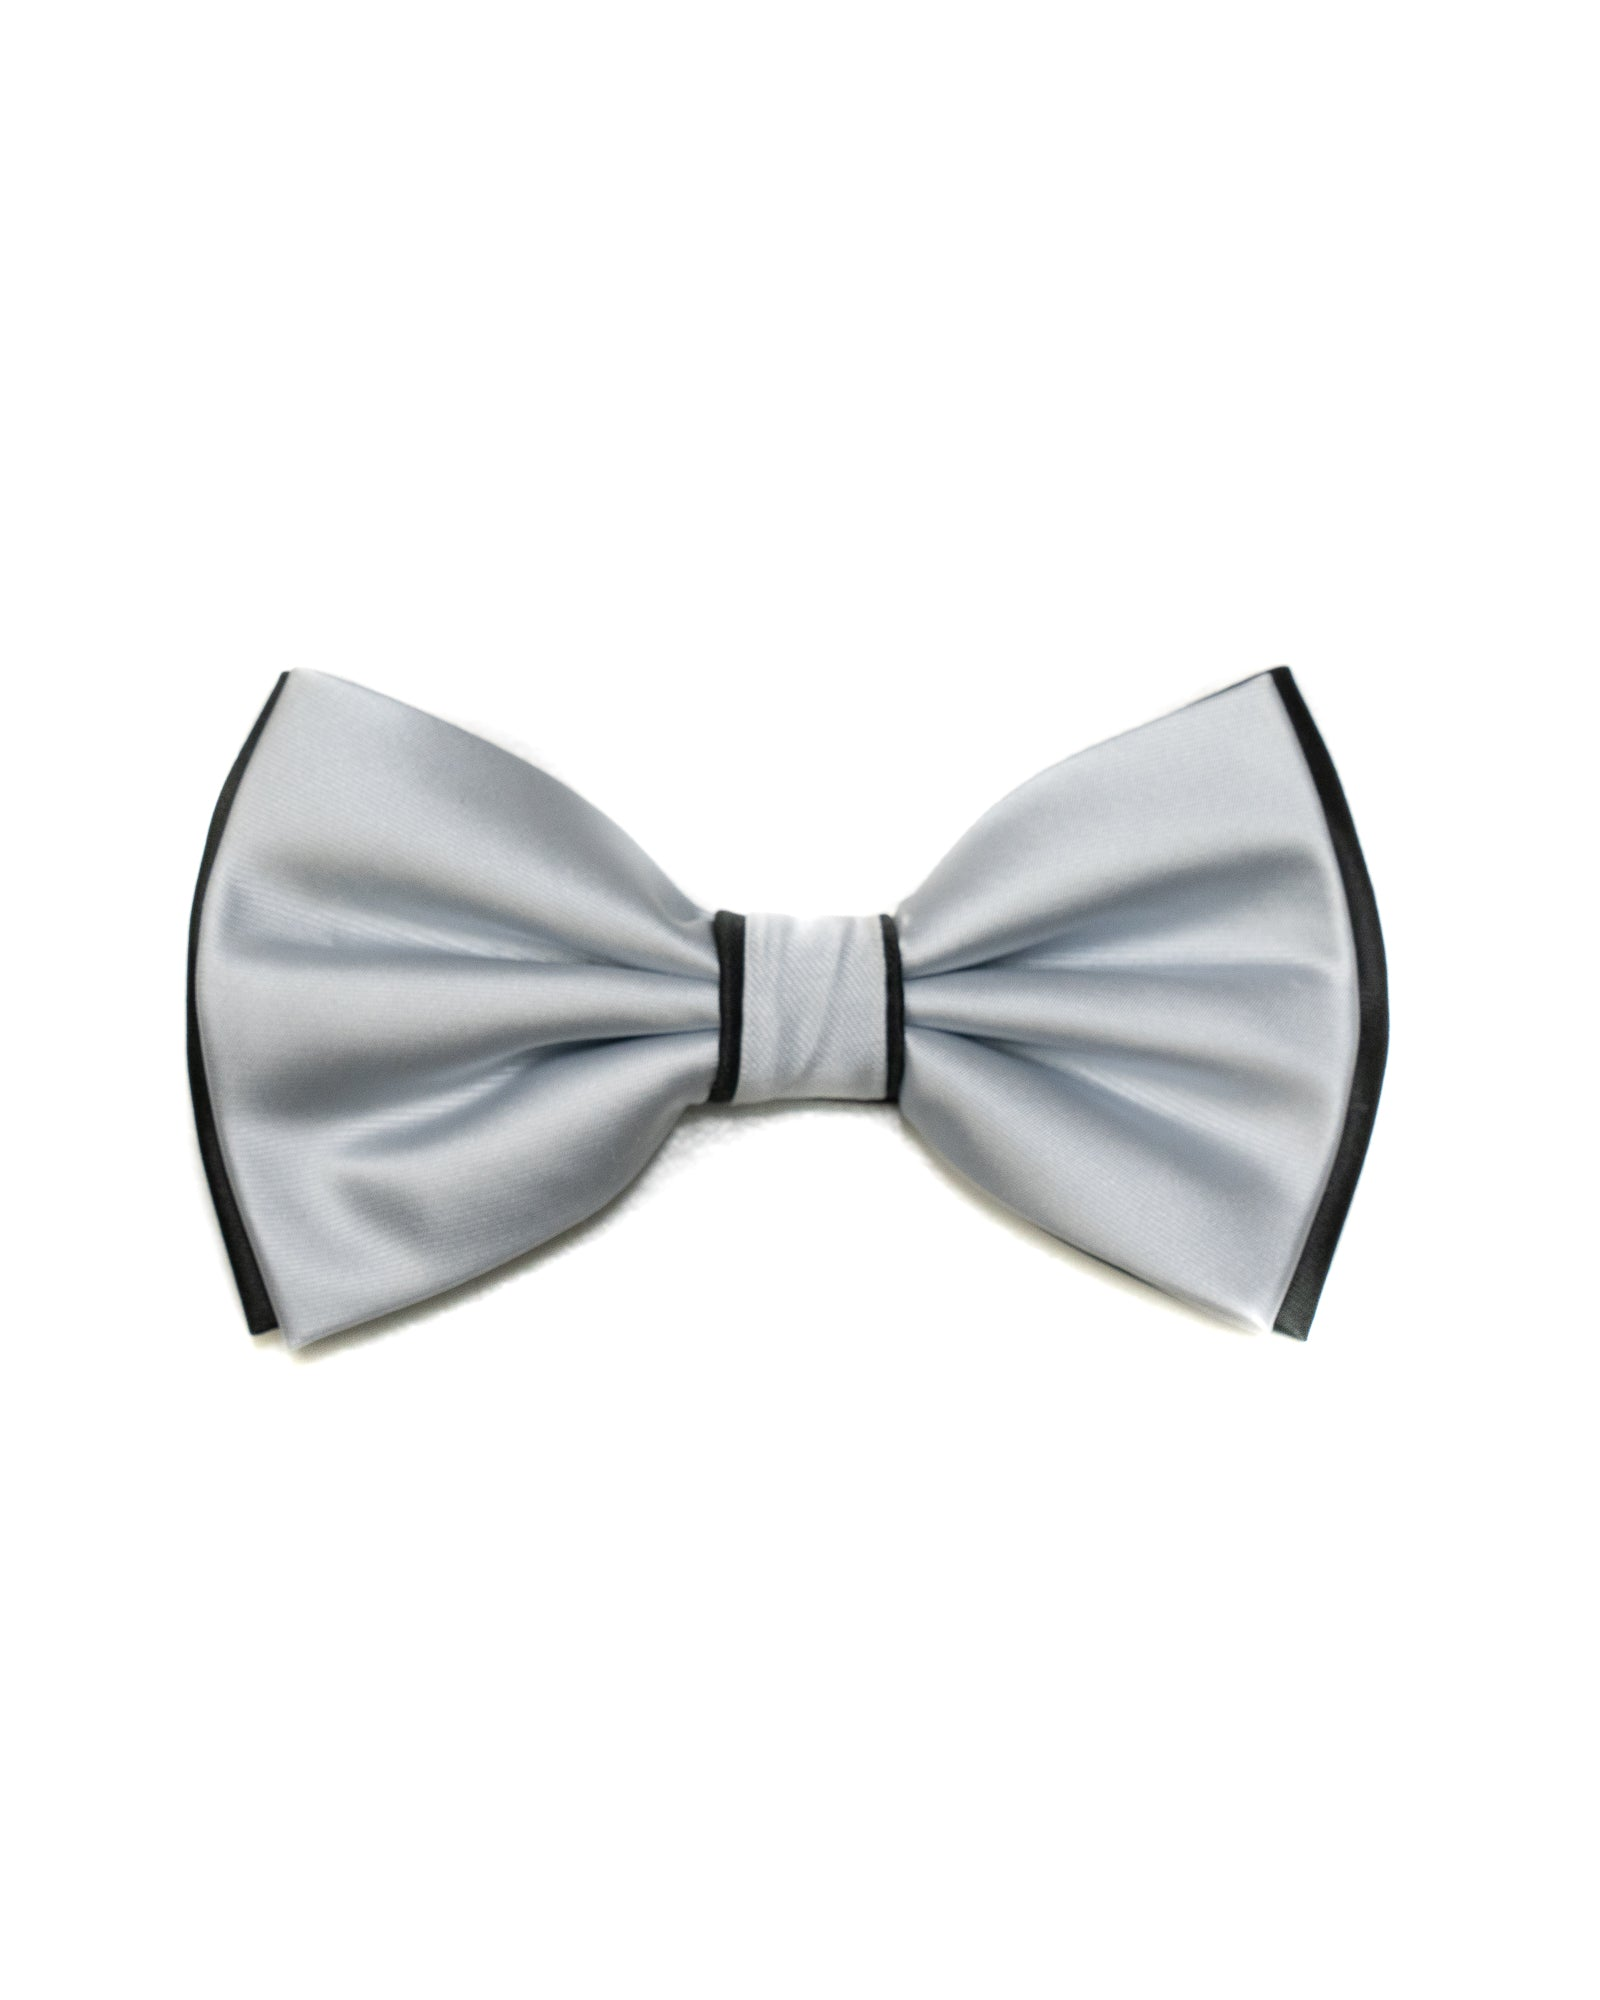 Bow Tie In Two Tone With Two Pocket Squares In Silver & Black - Rainwater's